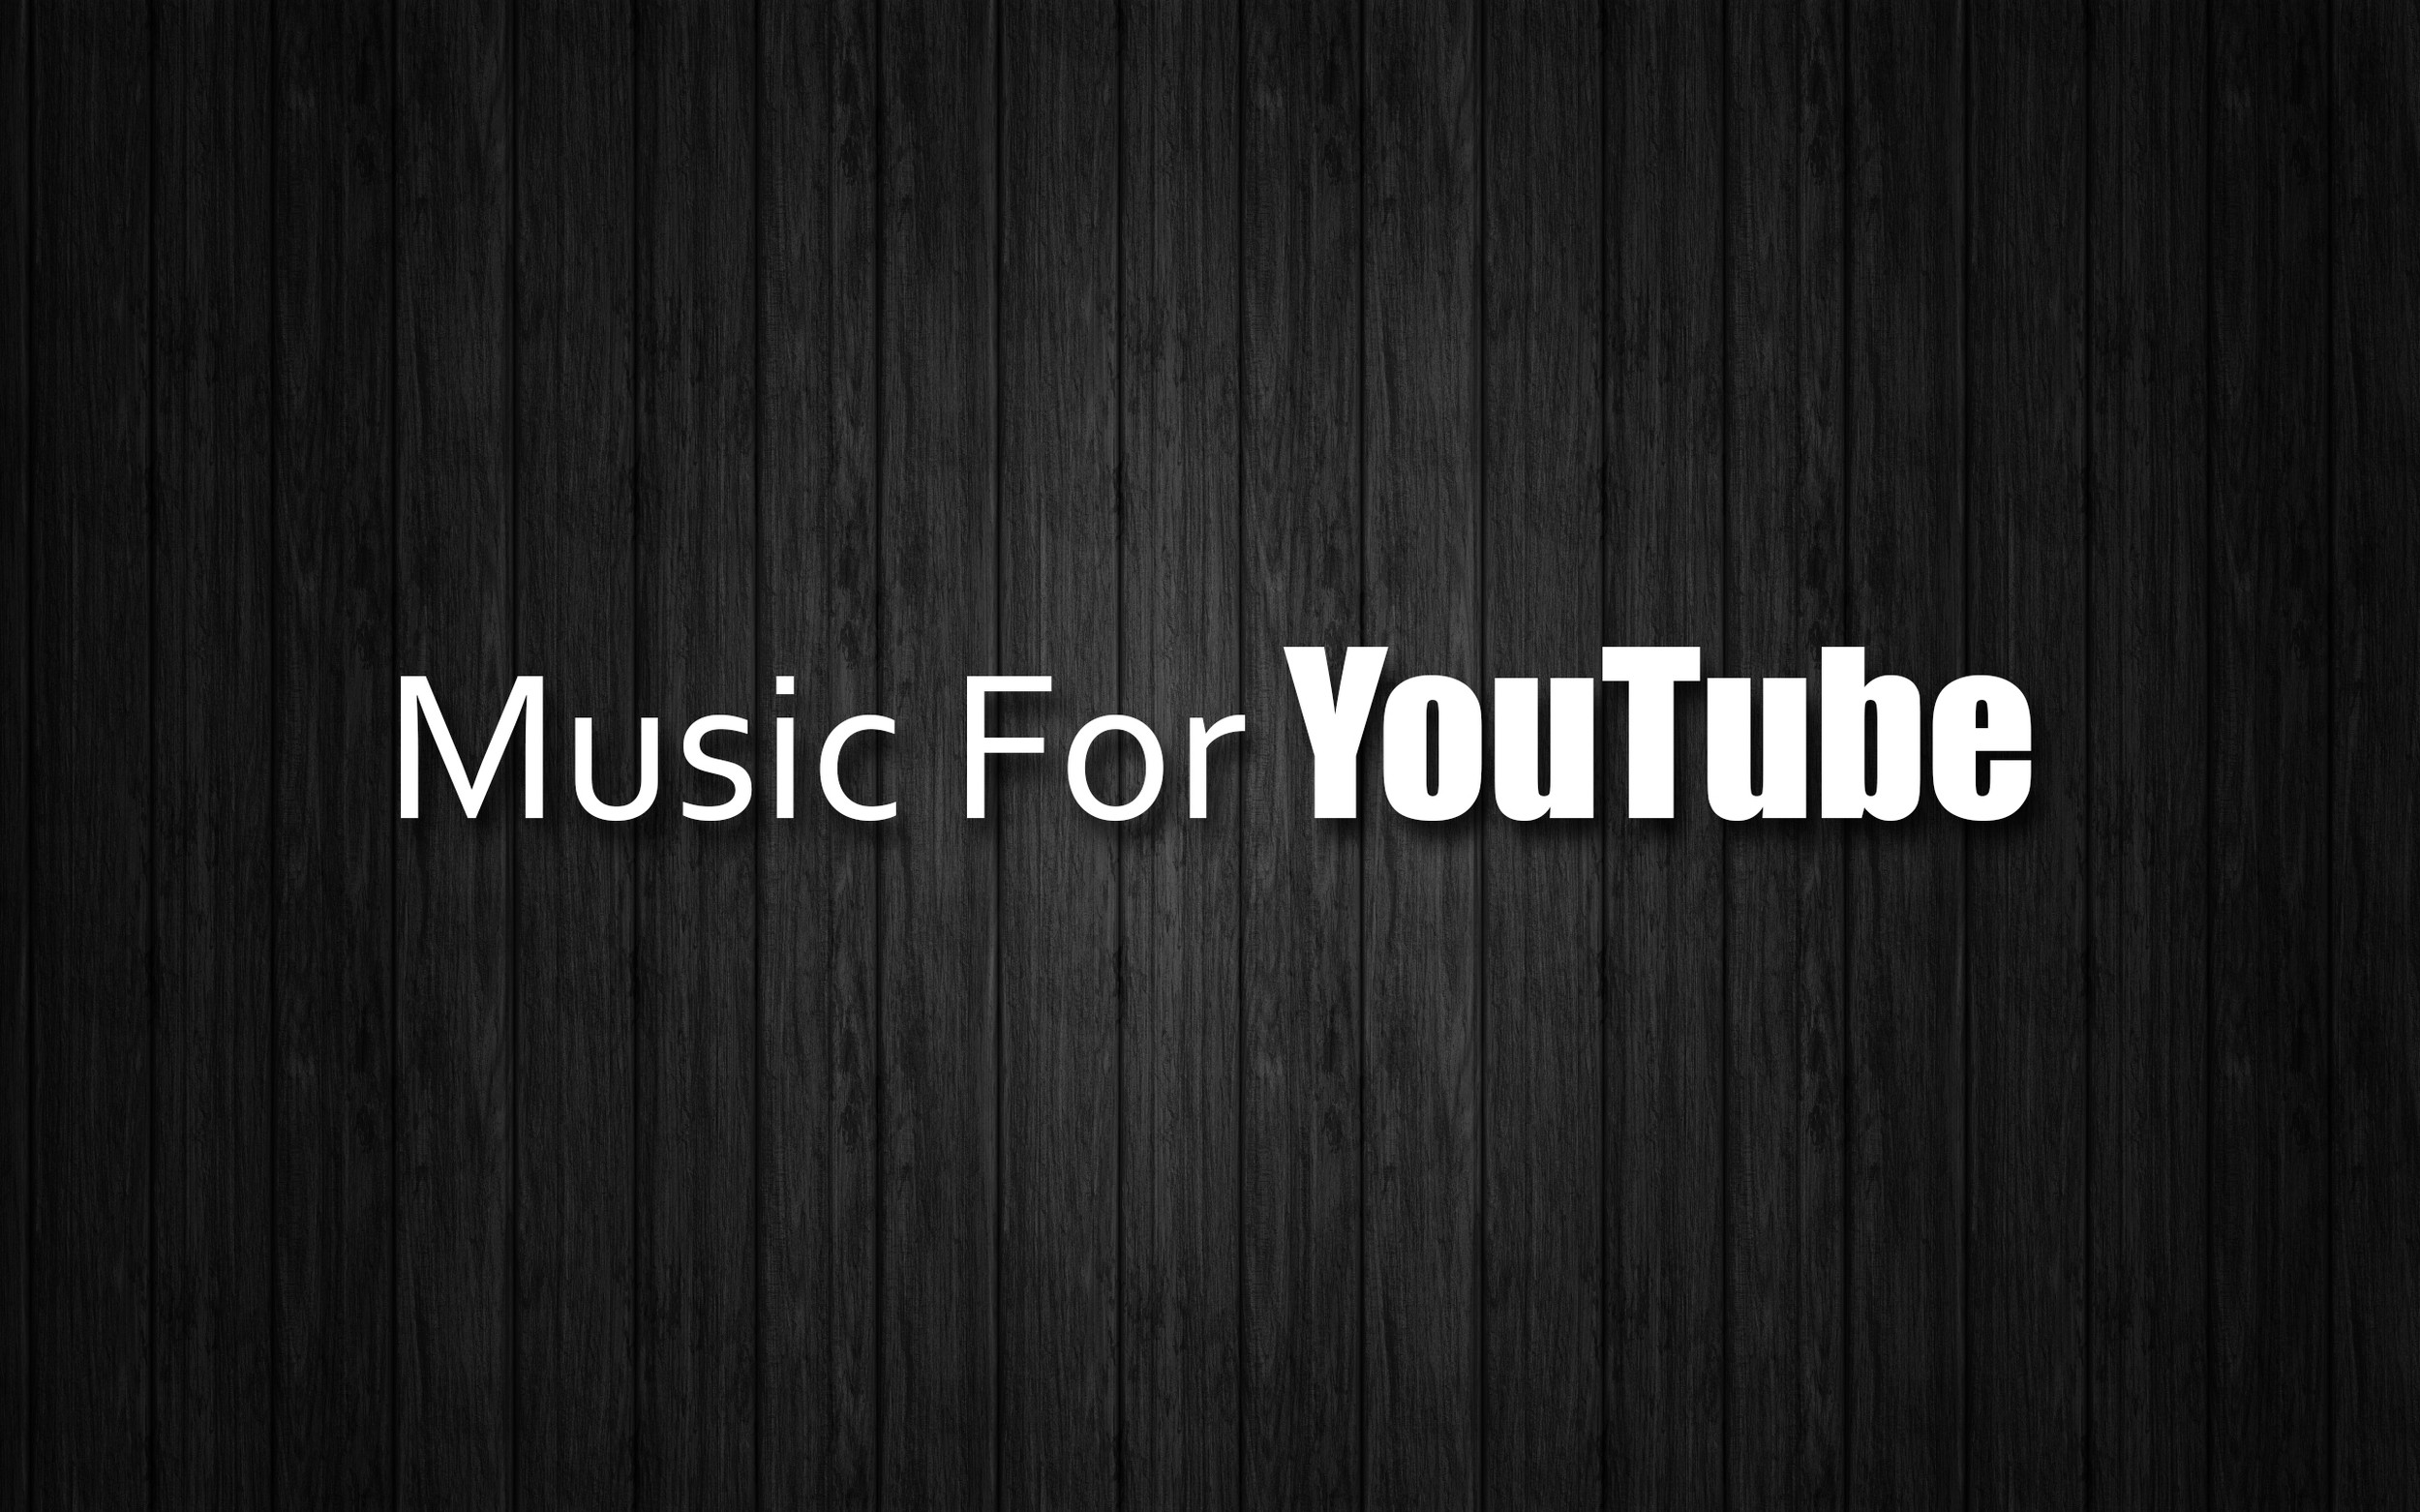 download mp3 from youtube link 320kbps